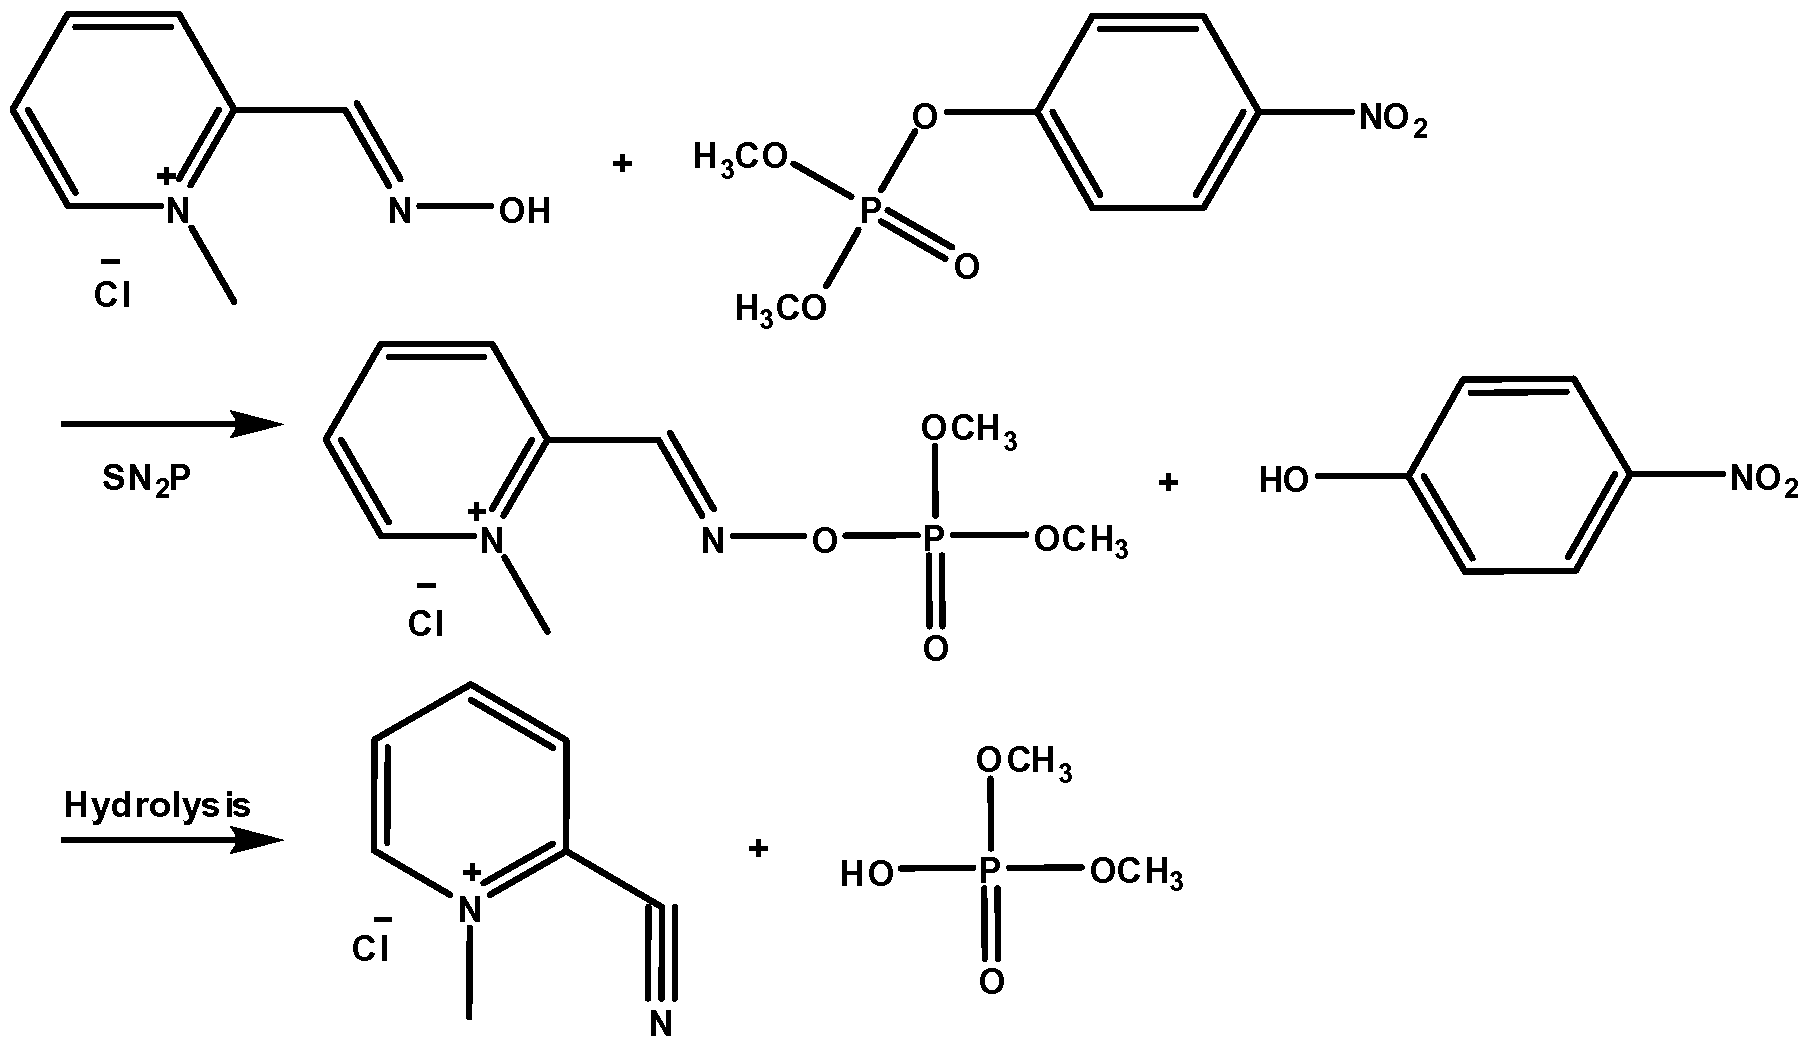 experiment 1 mechanism of nitrile oxide Preparation and reactivity of some stable nitrile oxides and  of the nitrile oxide moiety,2 eg 4-substituted-2,6-dimethylbenzonitrile oxides 1, or by.